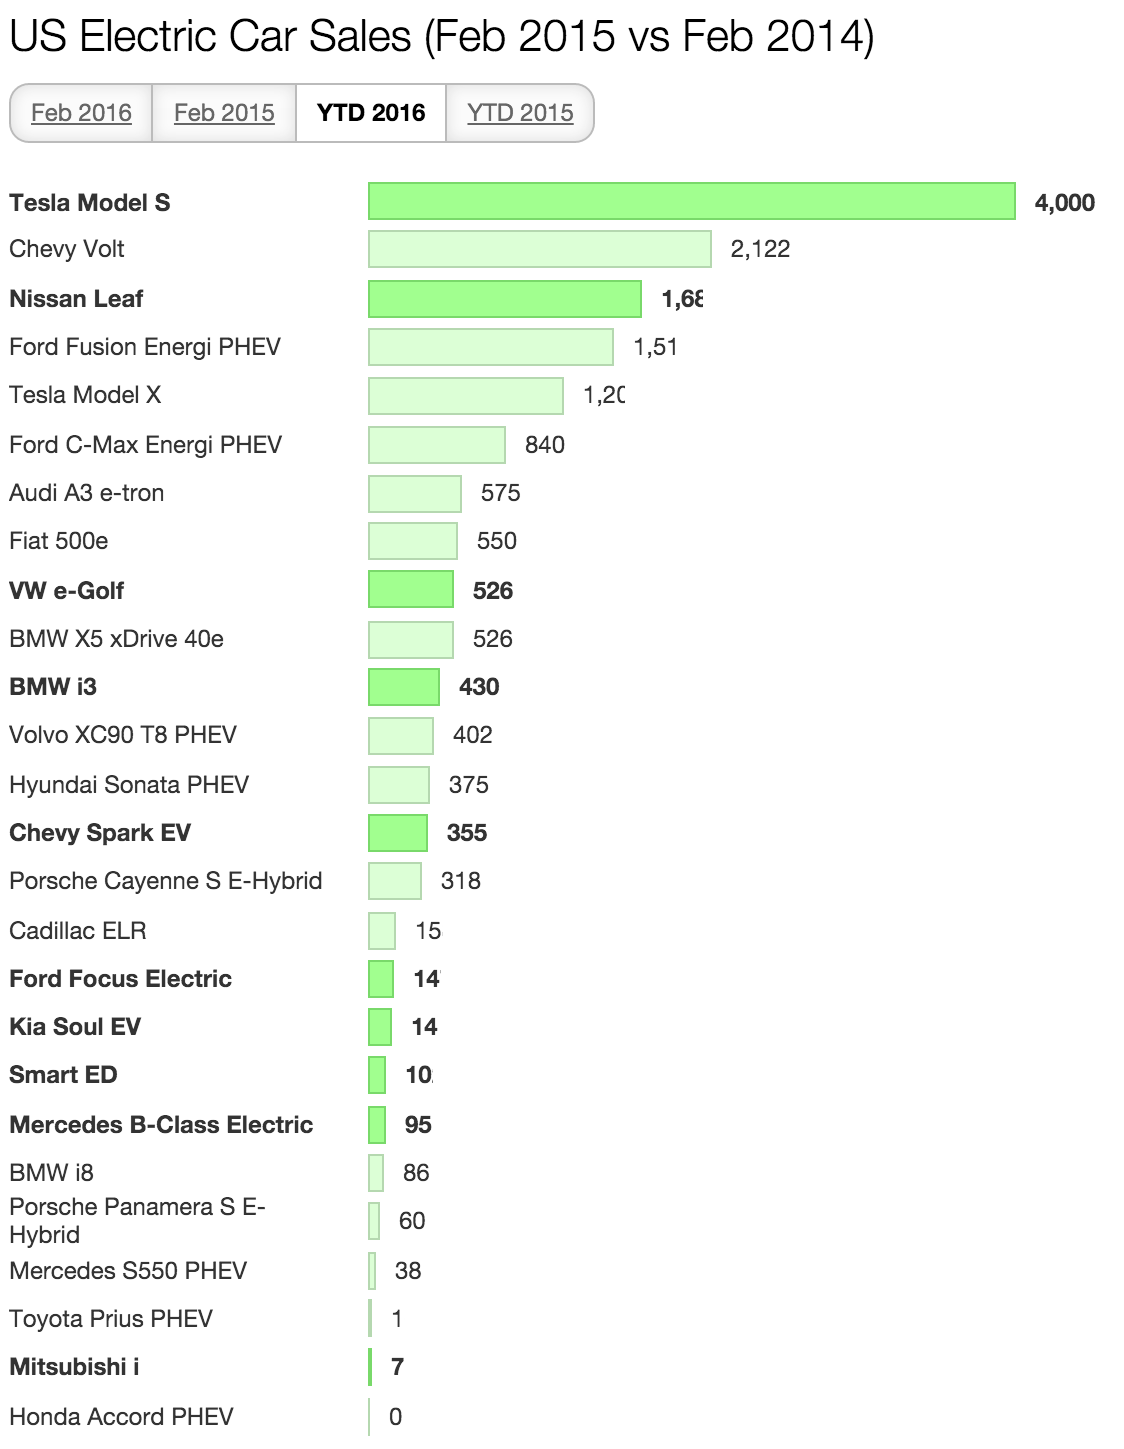 US Feb YTD Electric Car Sales 2016